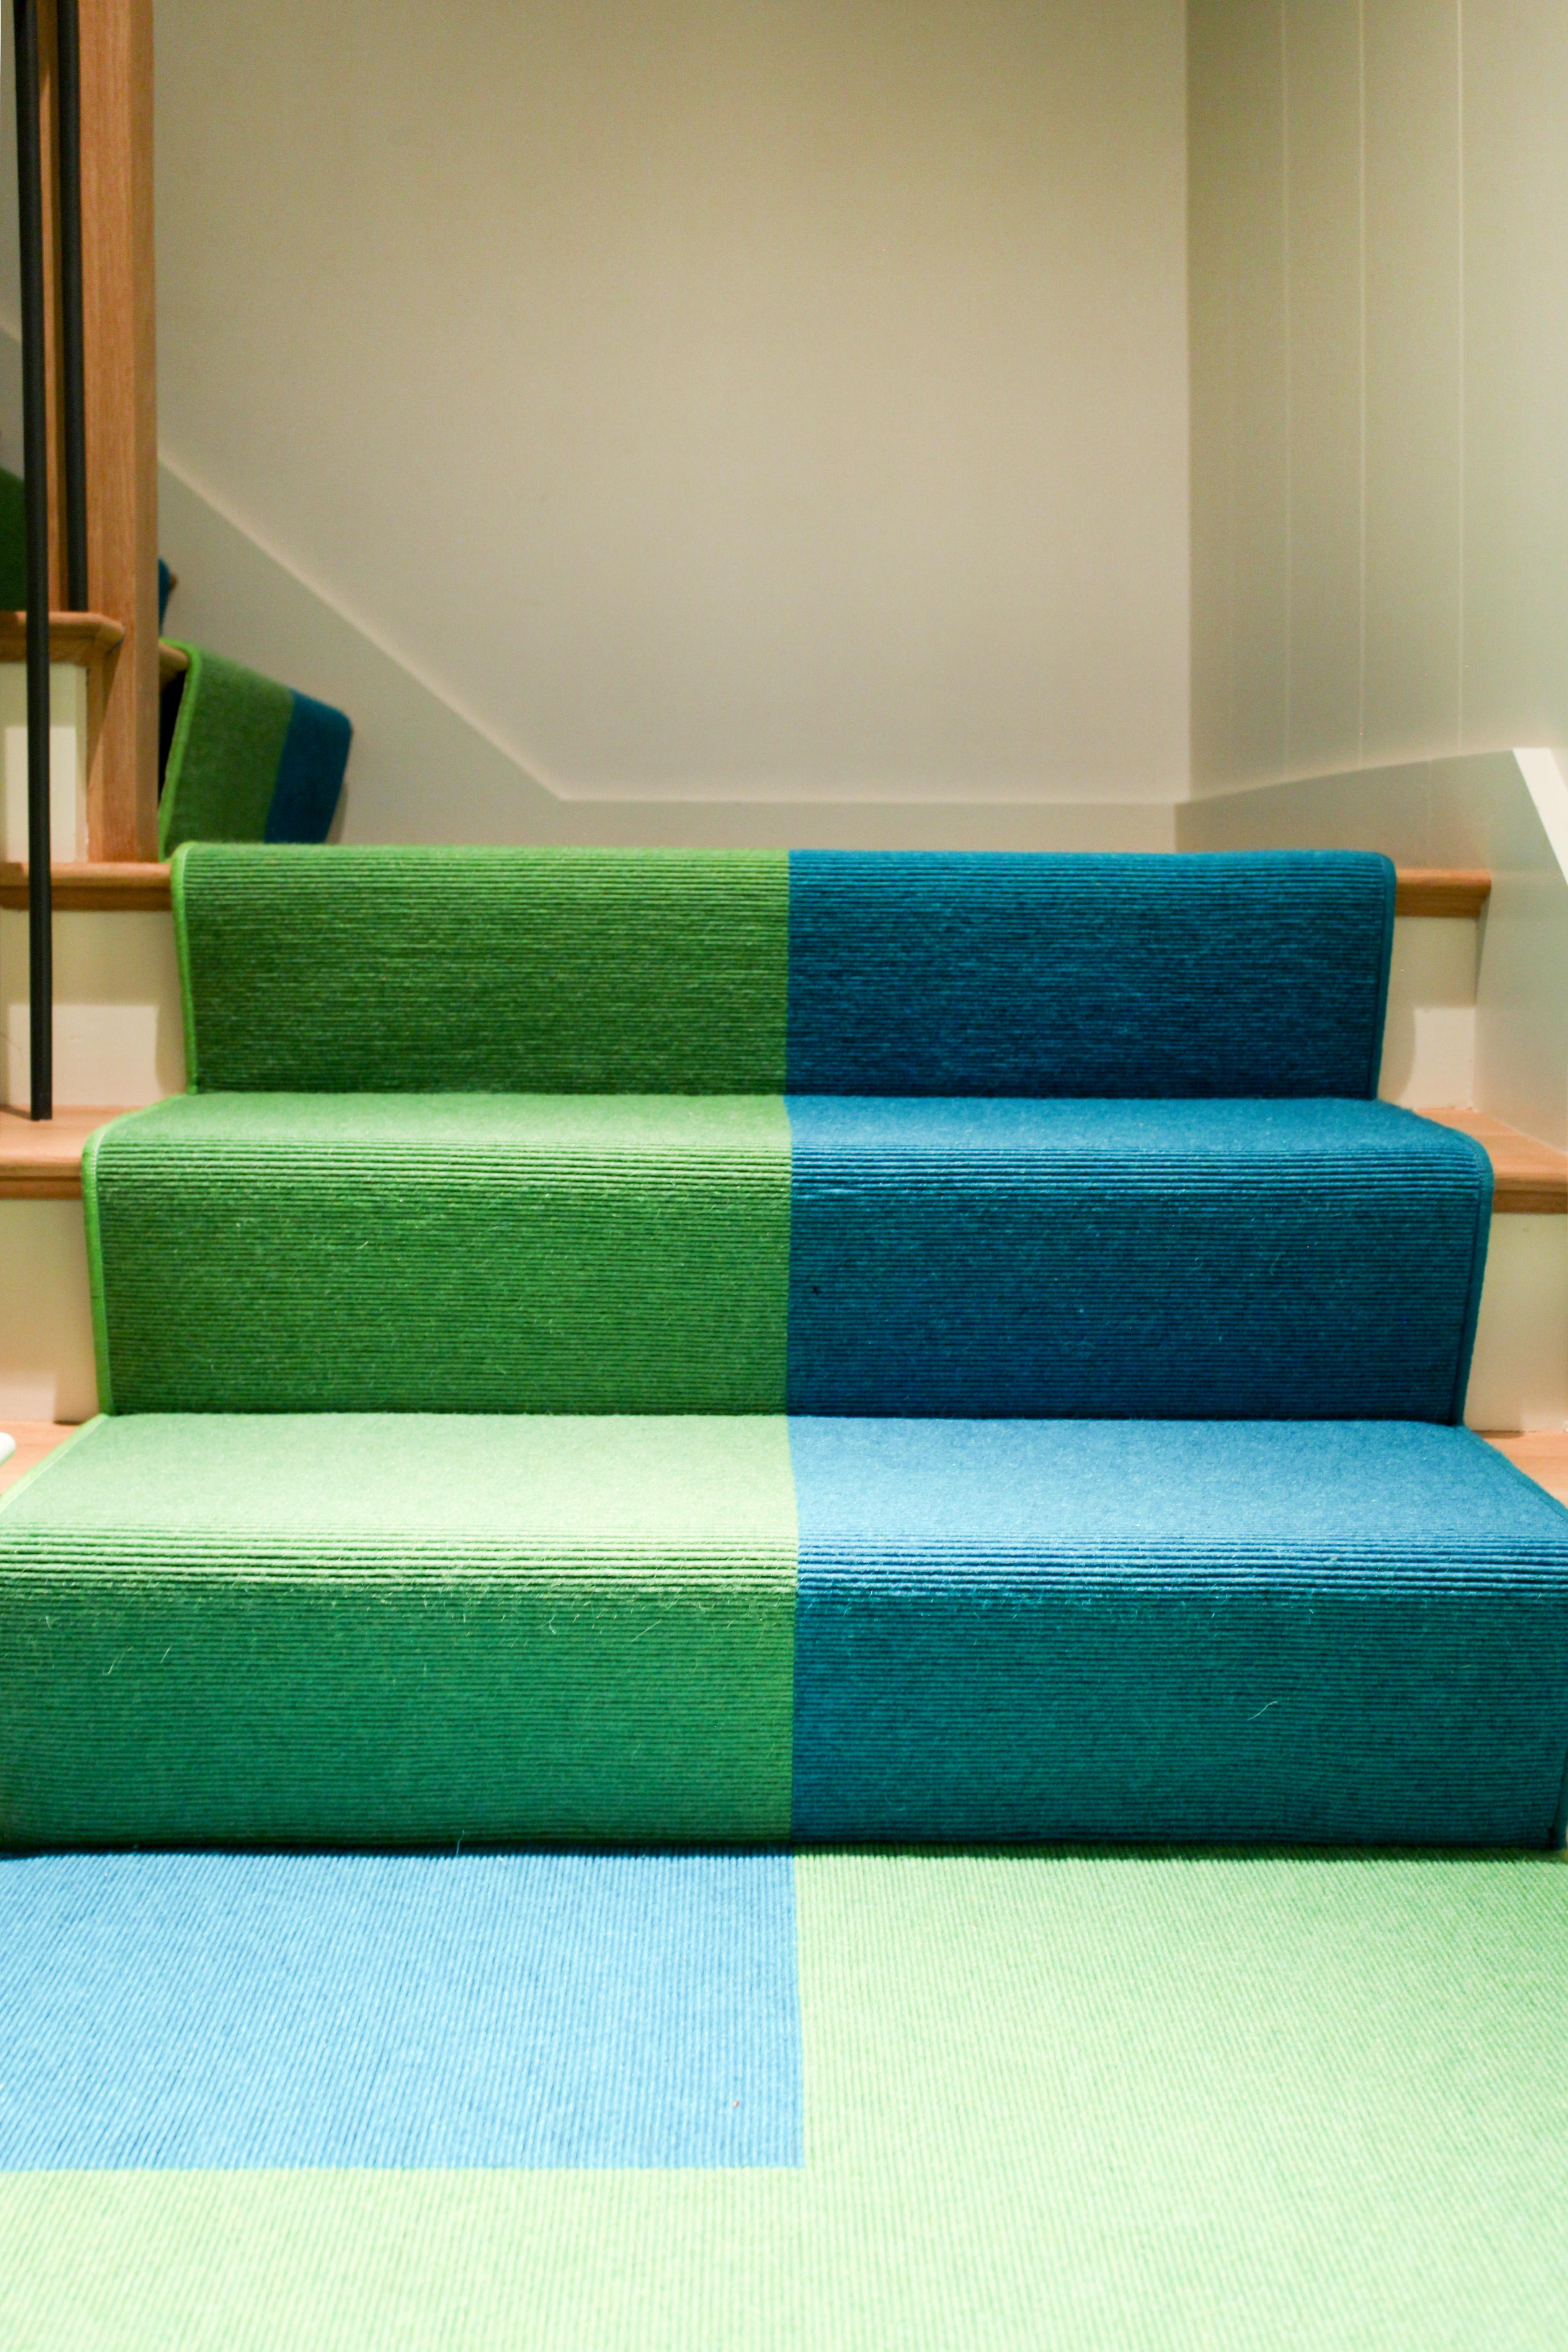 Custom Stair Runner Leading To A Basement Basement Contemporary Modern By  Cara Woodhouse Interiors LLC